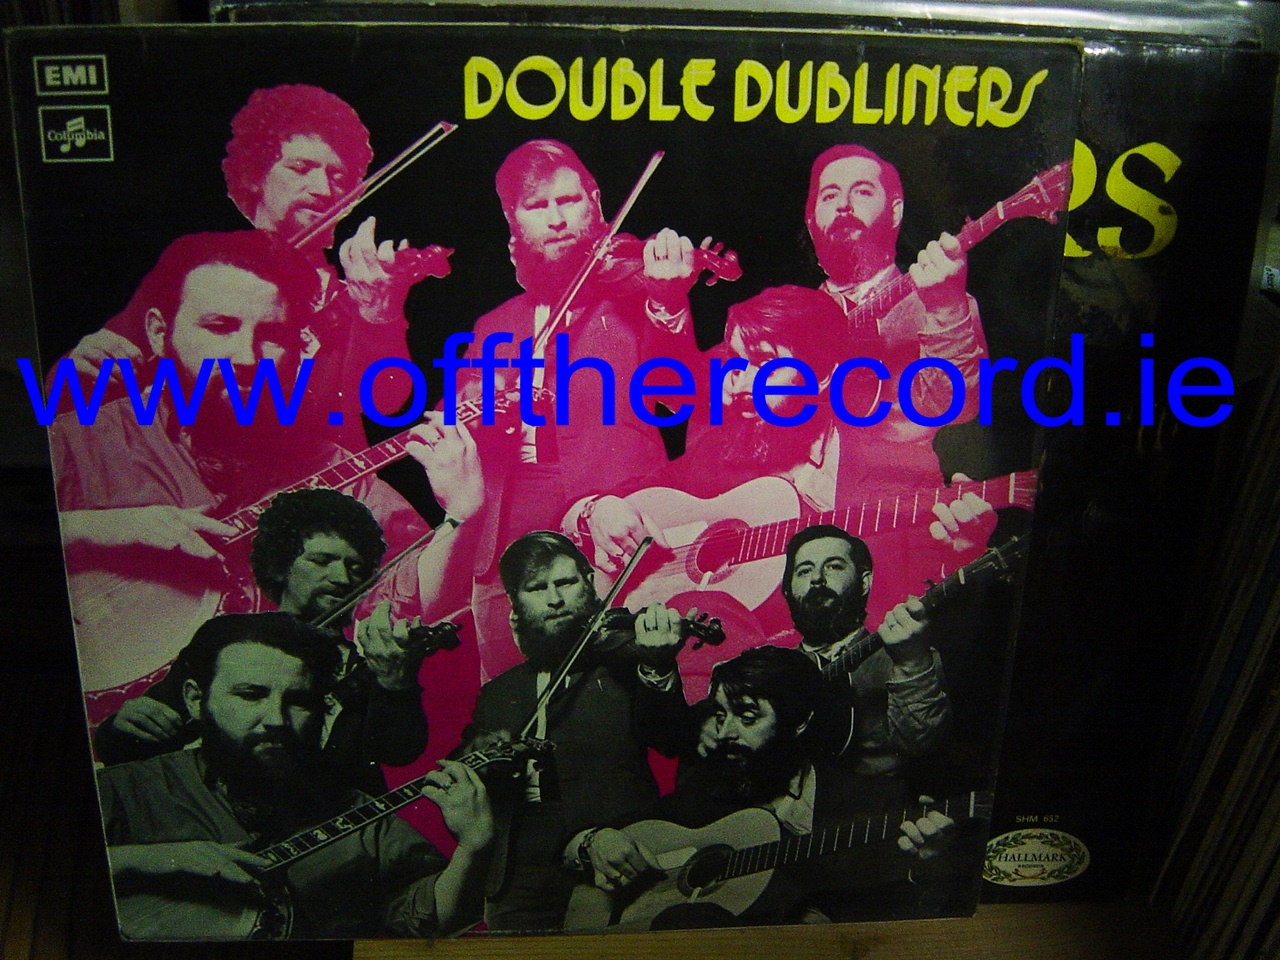 The Dubliners - Double Dubliners - EMI / ColumbiaRecords